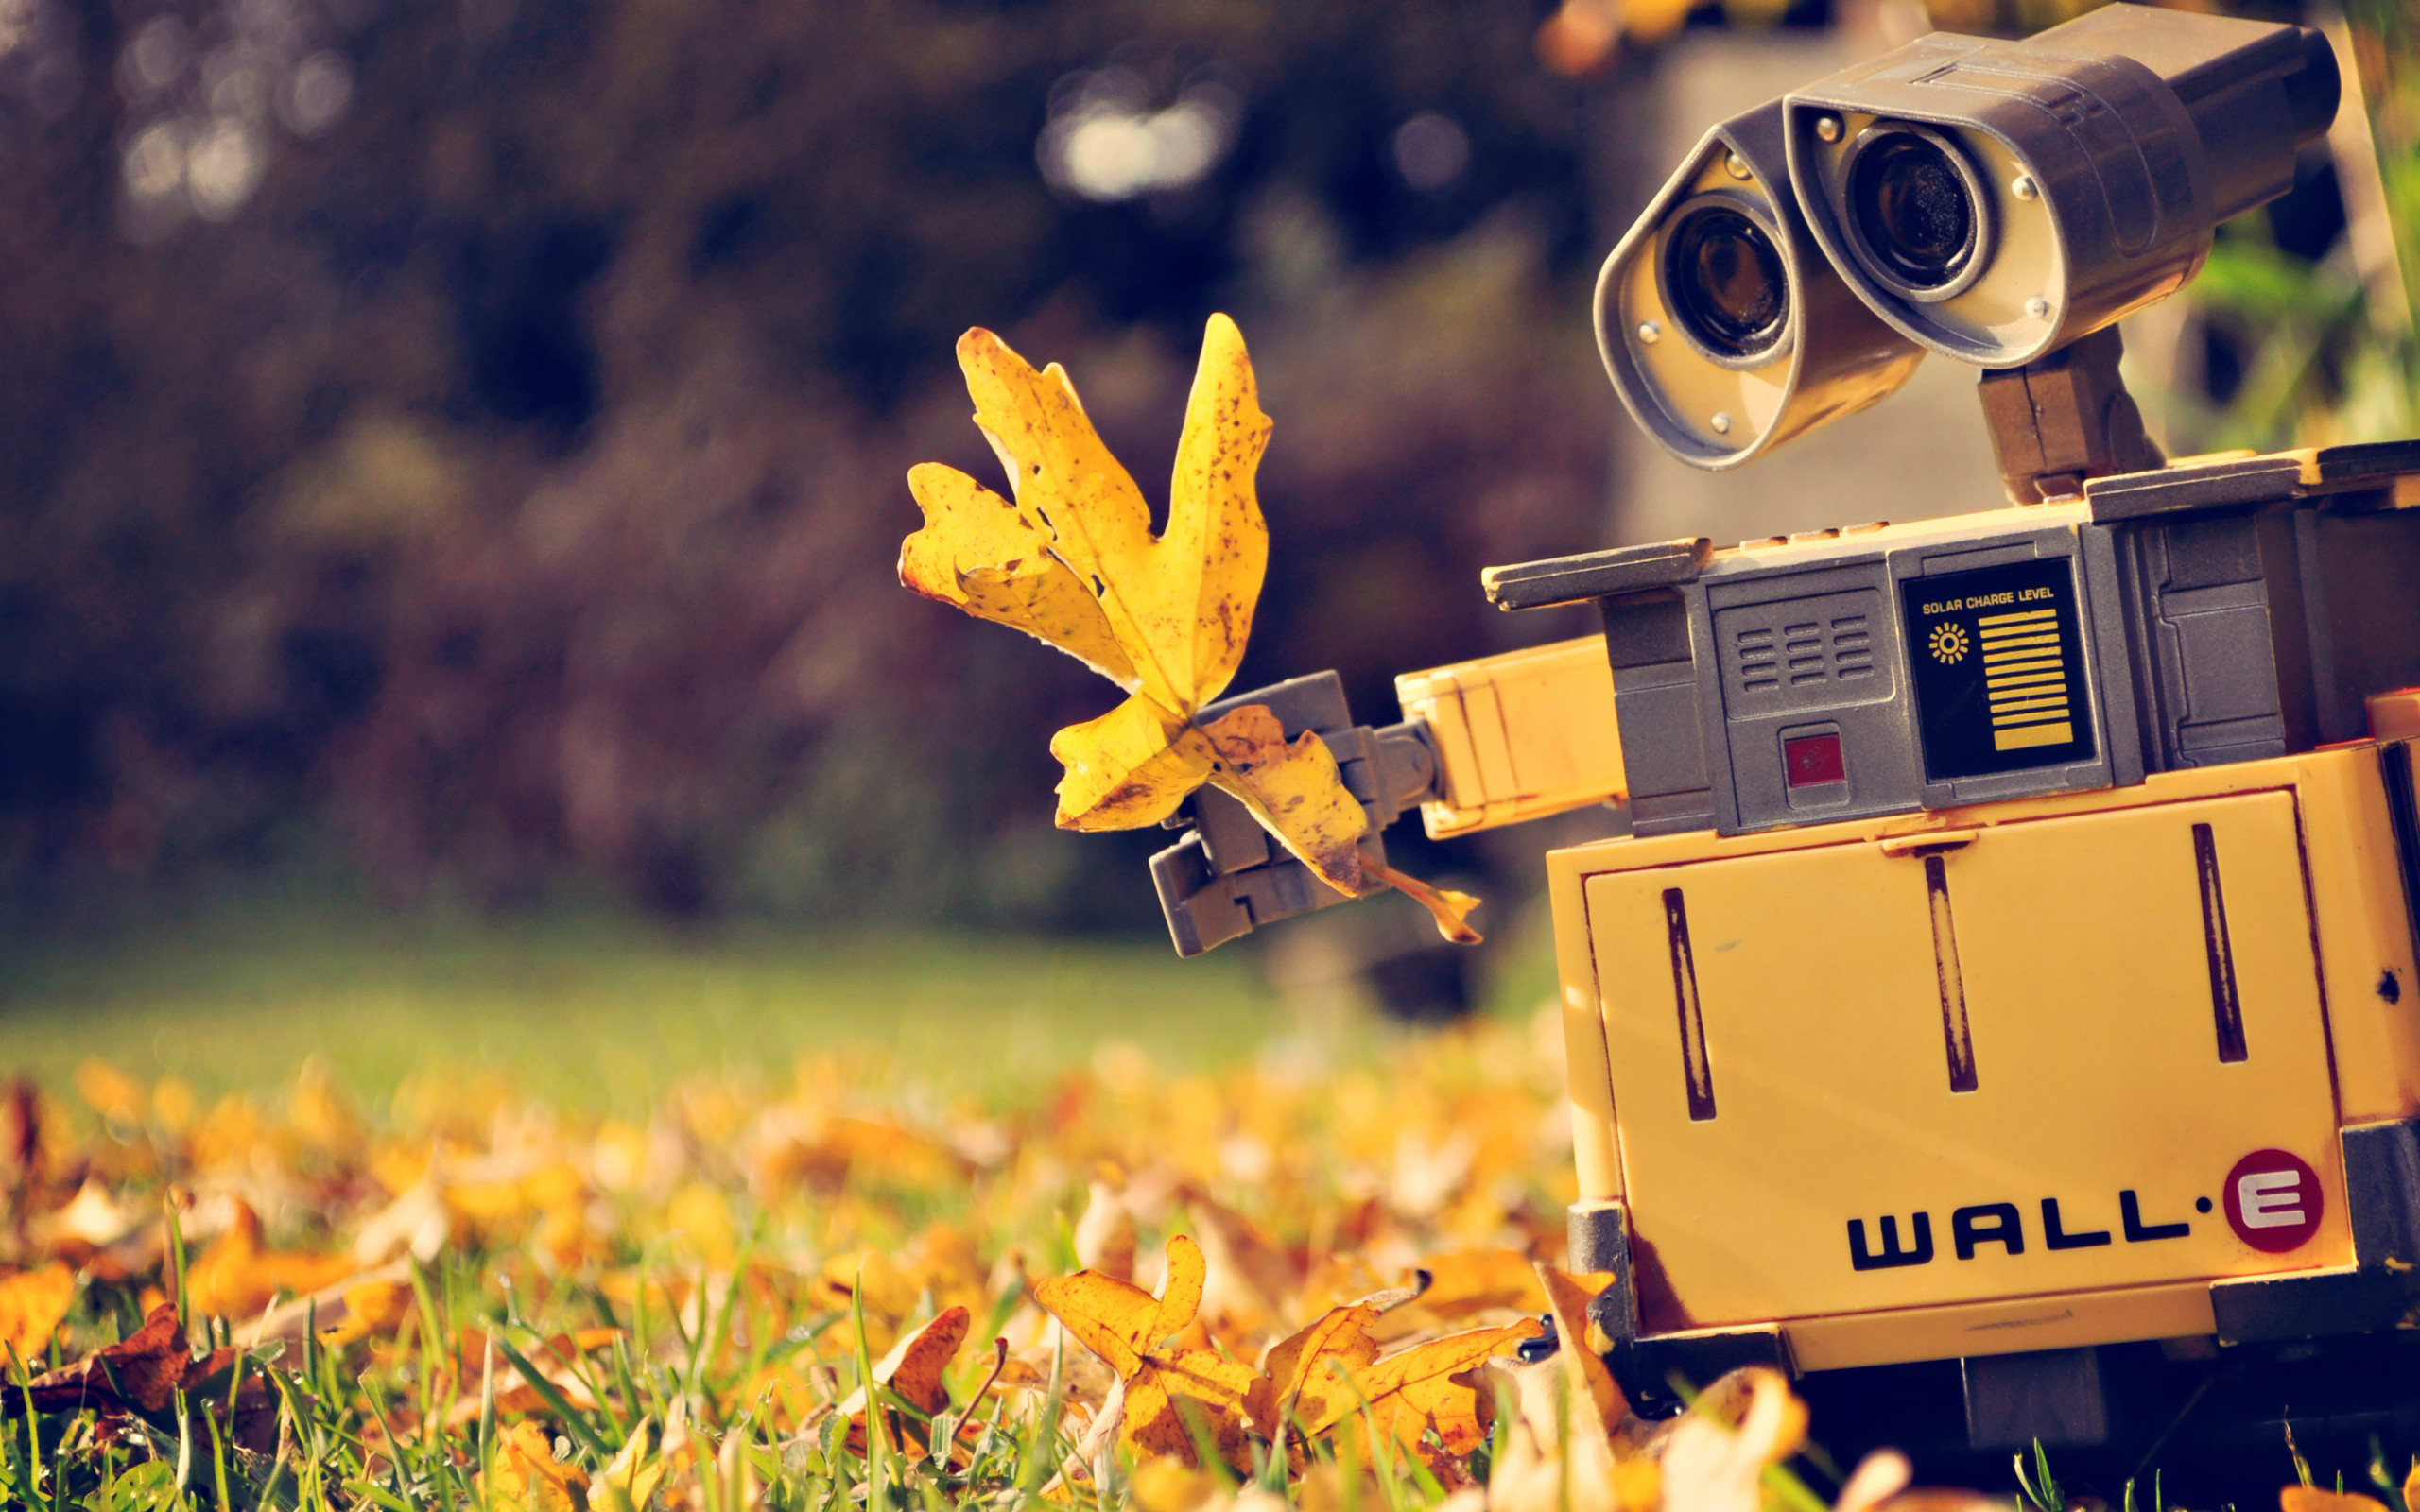 2560x1600 70 Wall·E HD Wallpapers | Backgrounds - Wallpaper Abyss